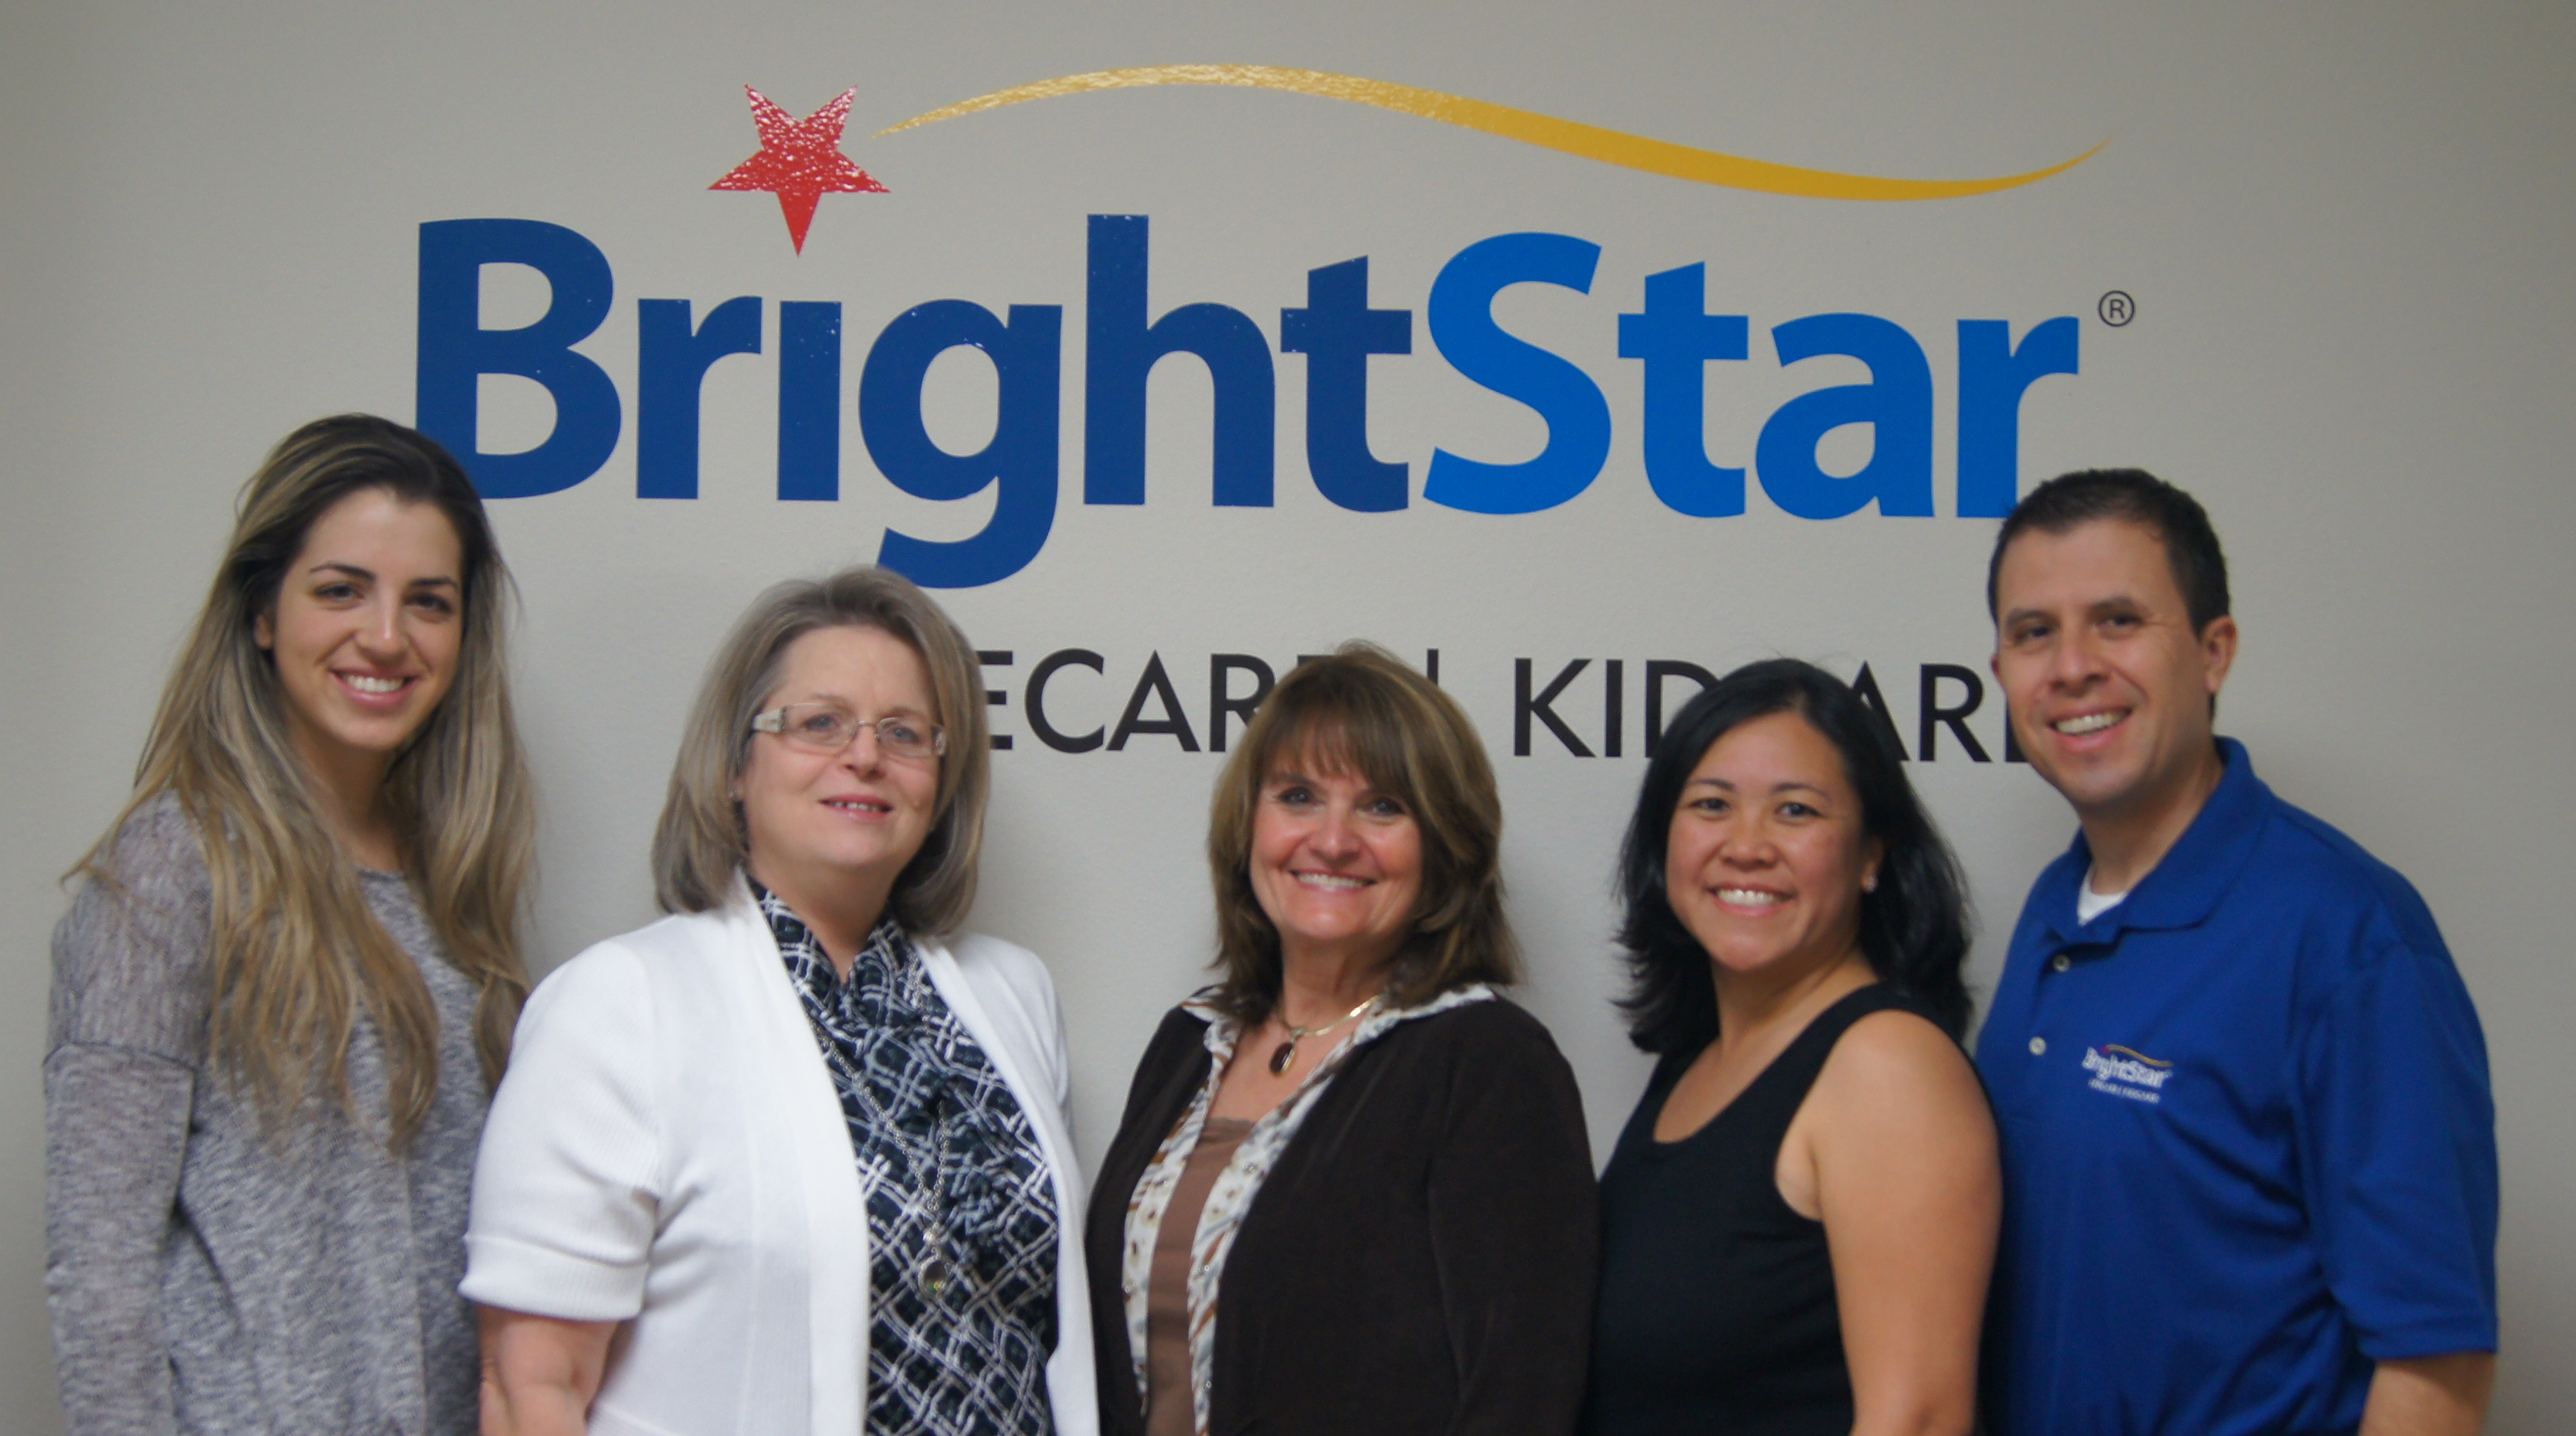 BrightStar Care of Conejo Valley, CA